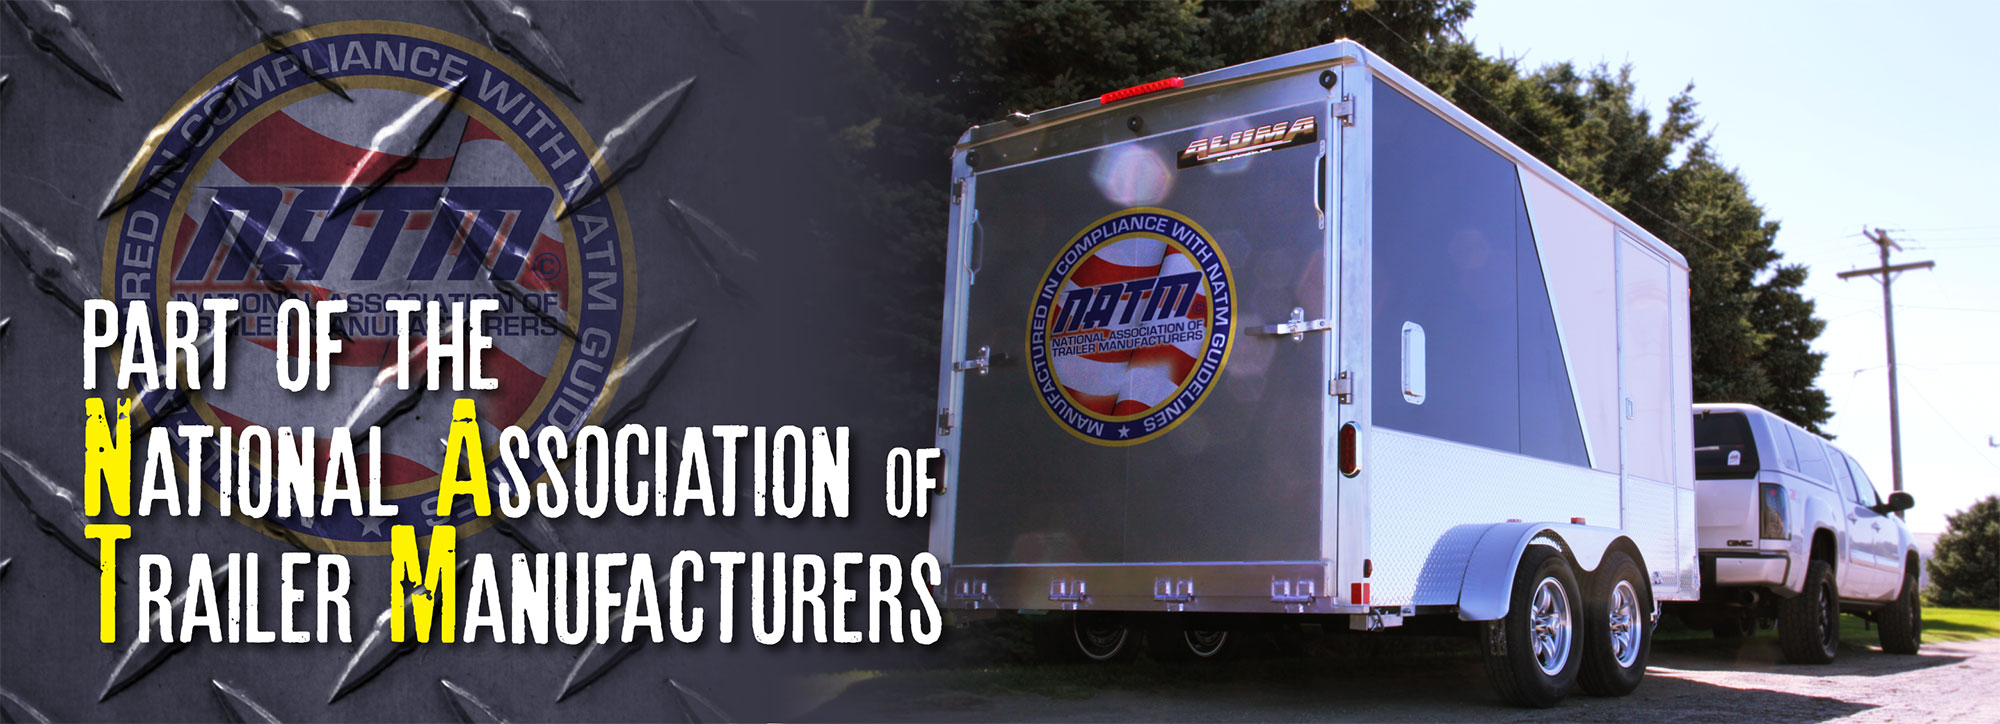 Part of the National Association of Trailer Manufacturers